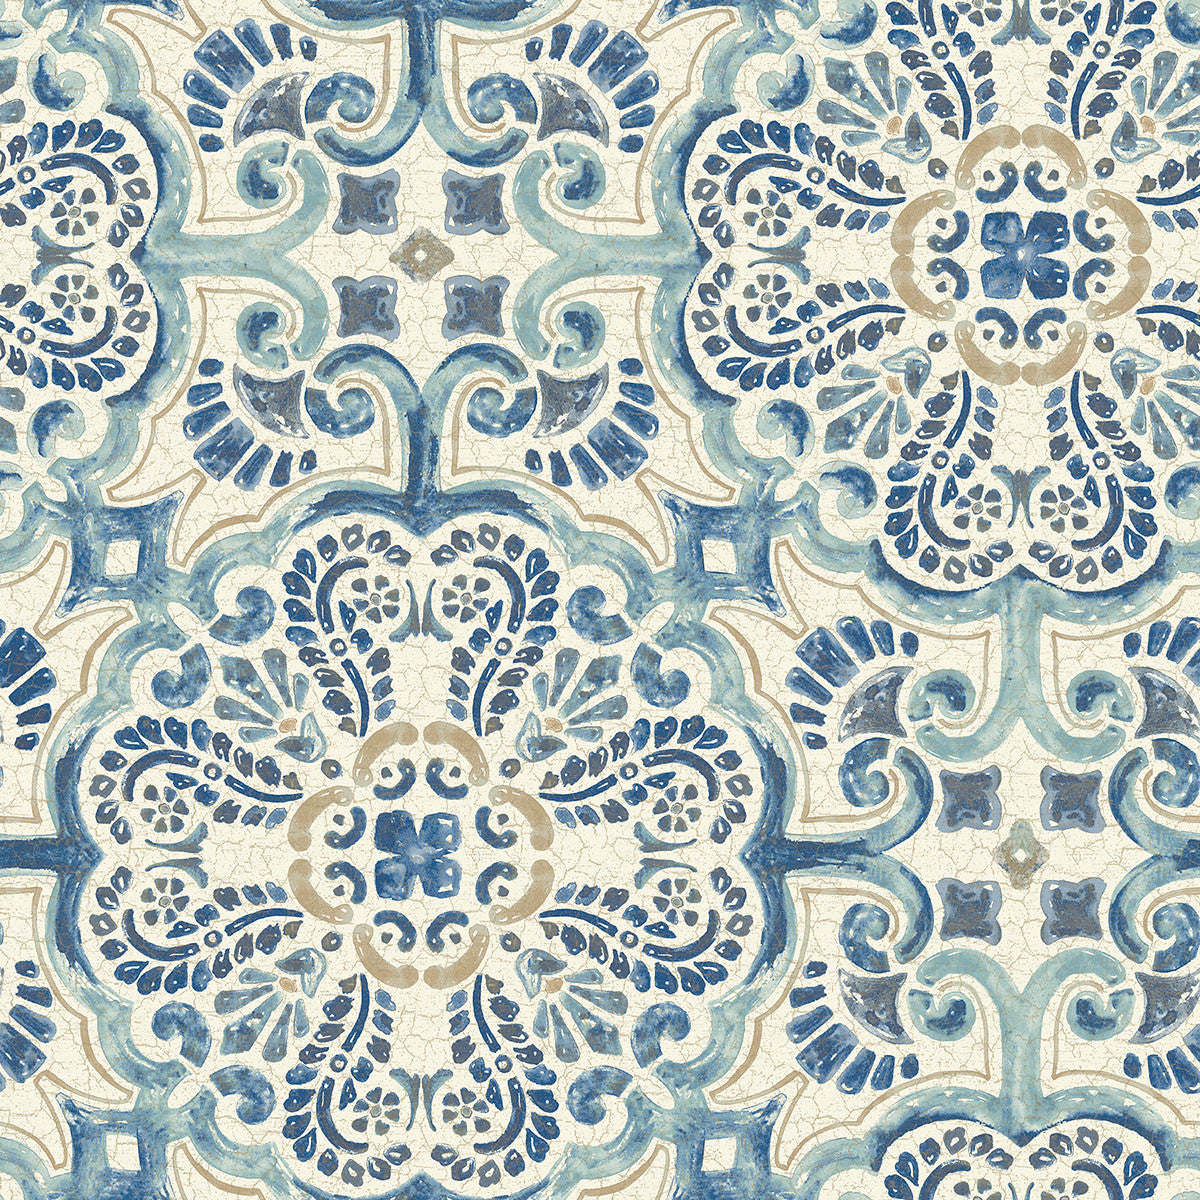 Blue Florentine Tile Peel and Stick Wallpaper